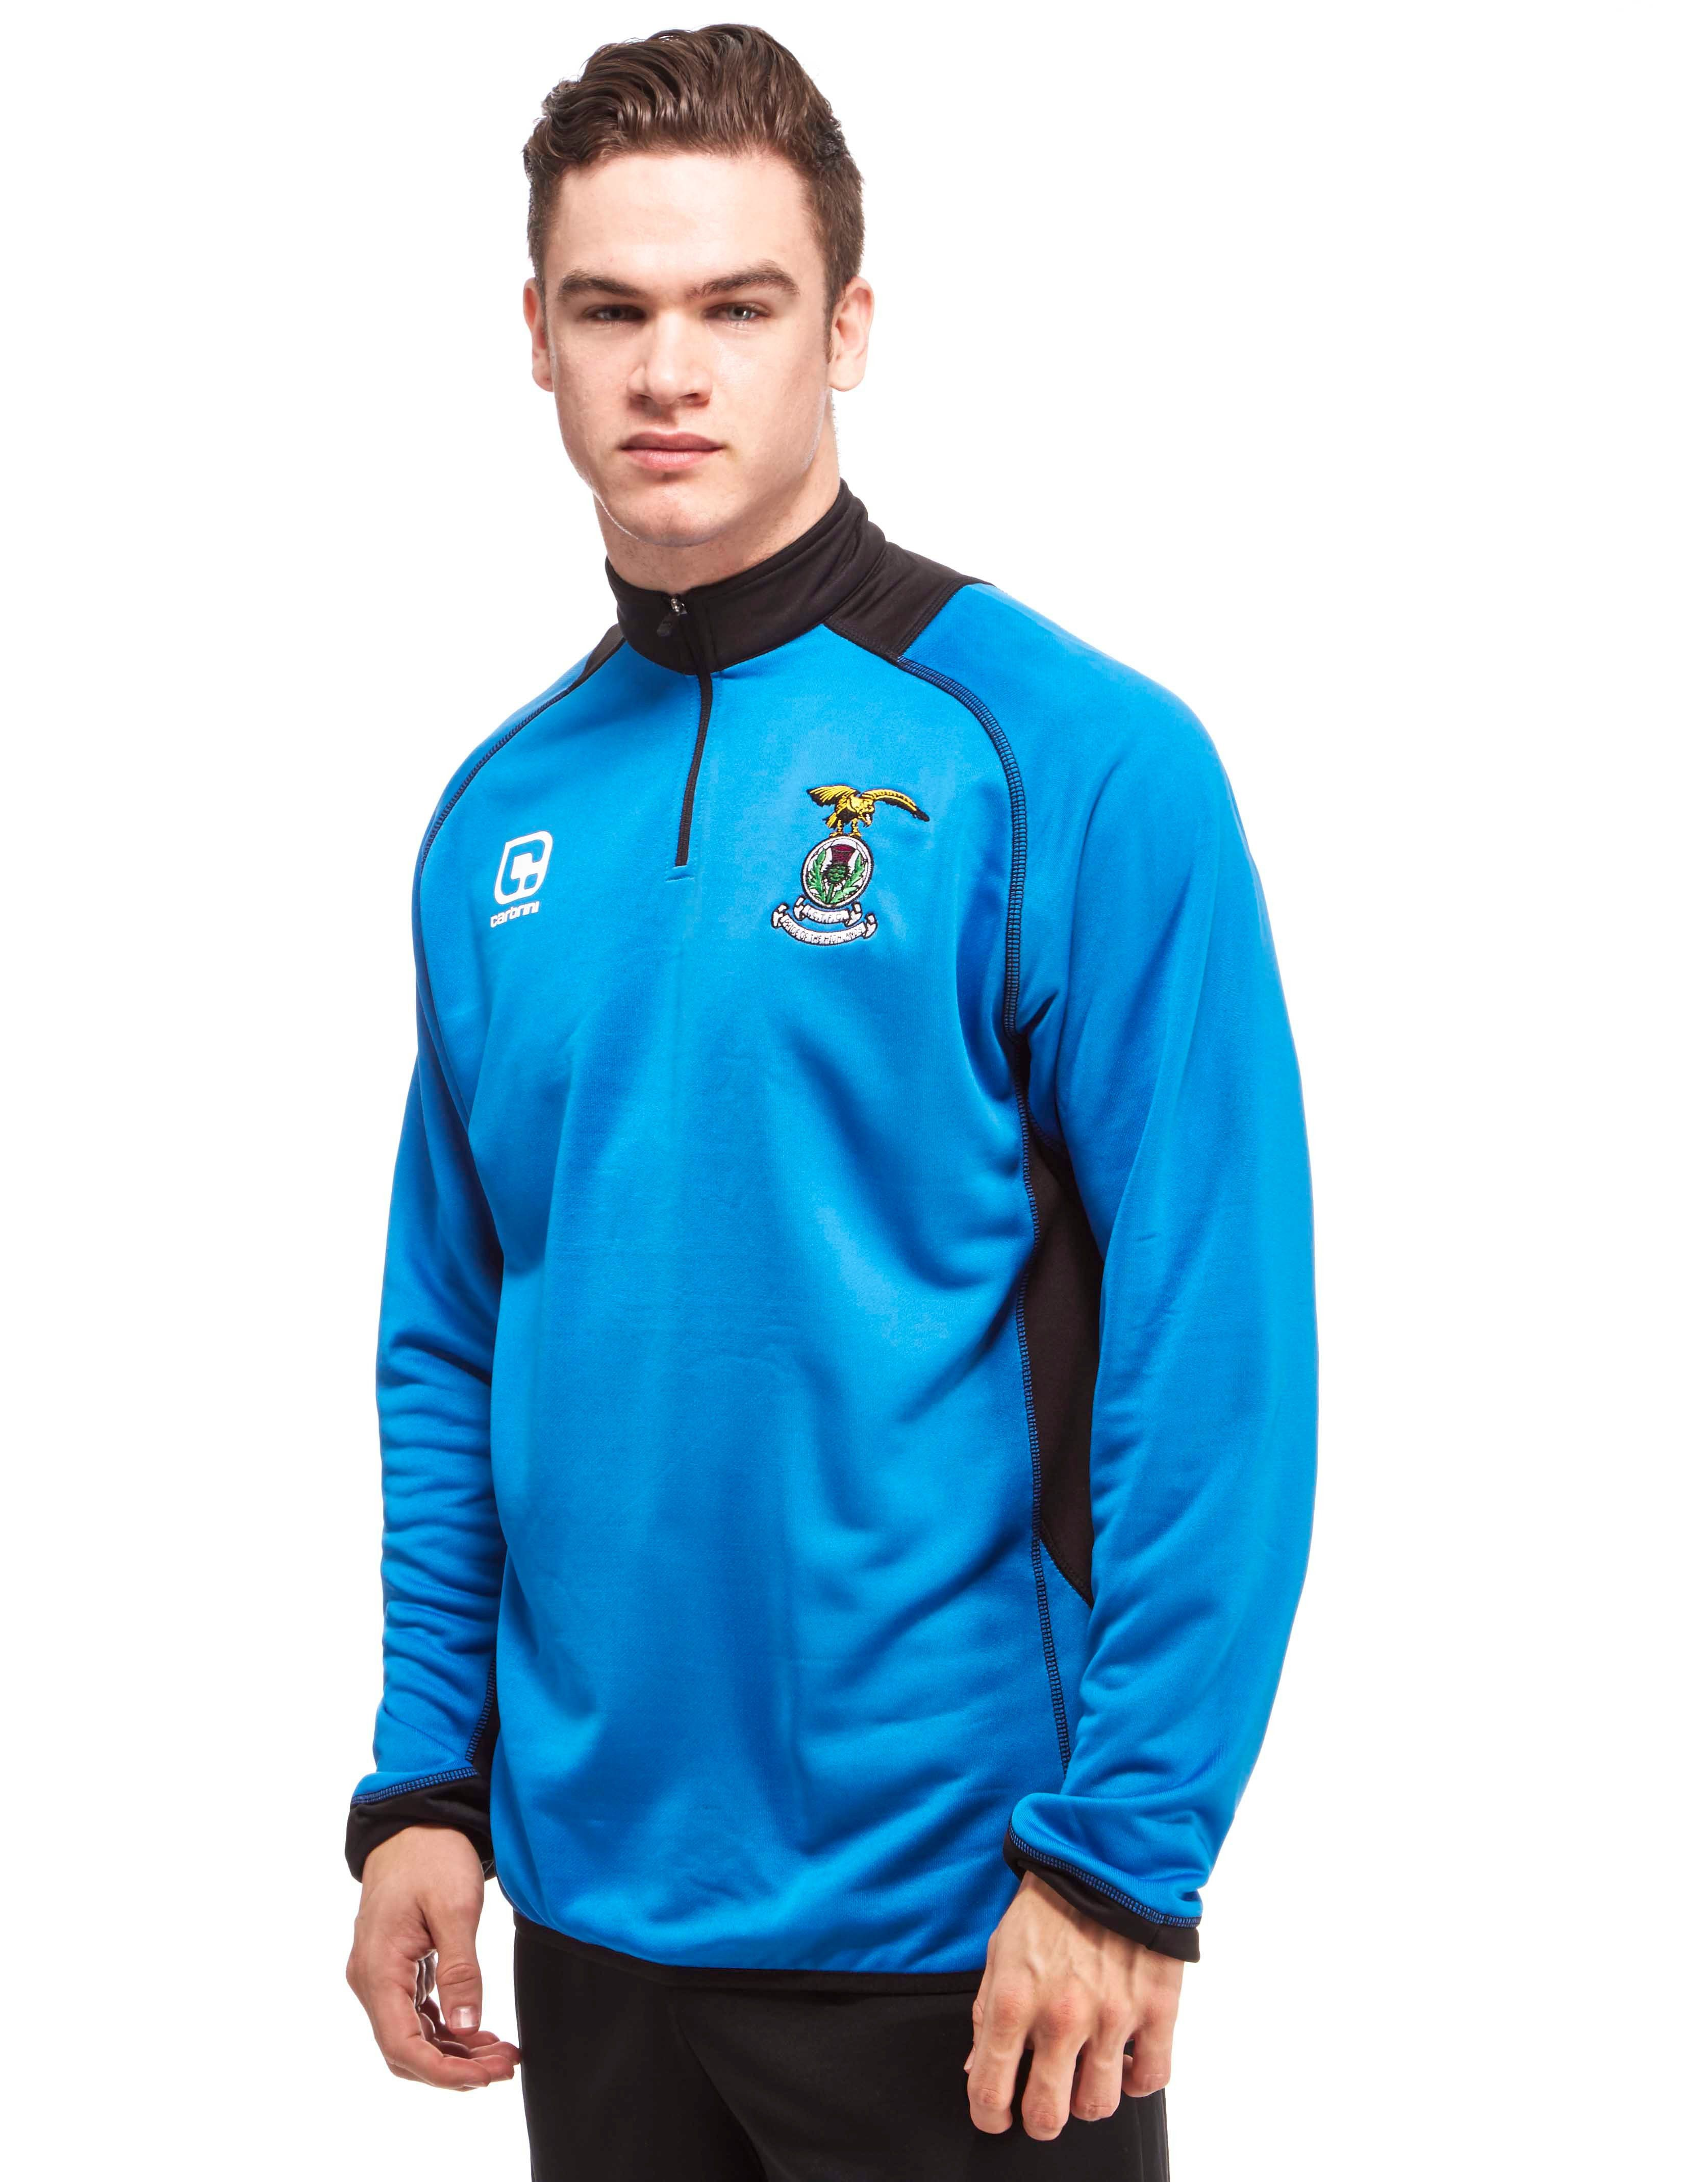 Carbrini Inverness CT 2016/17 Sweat Top